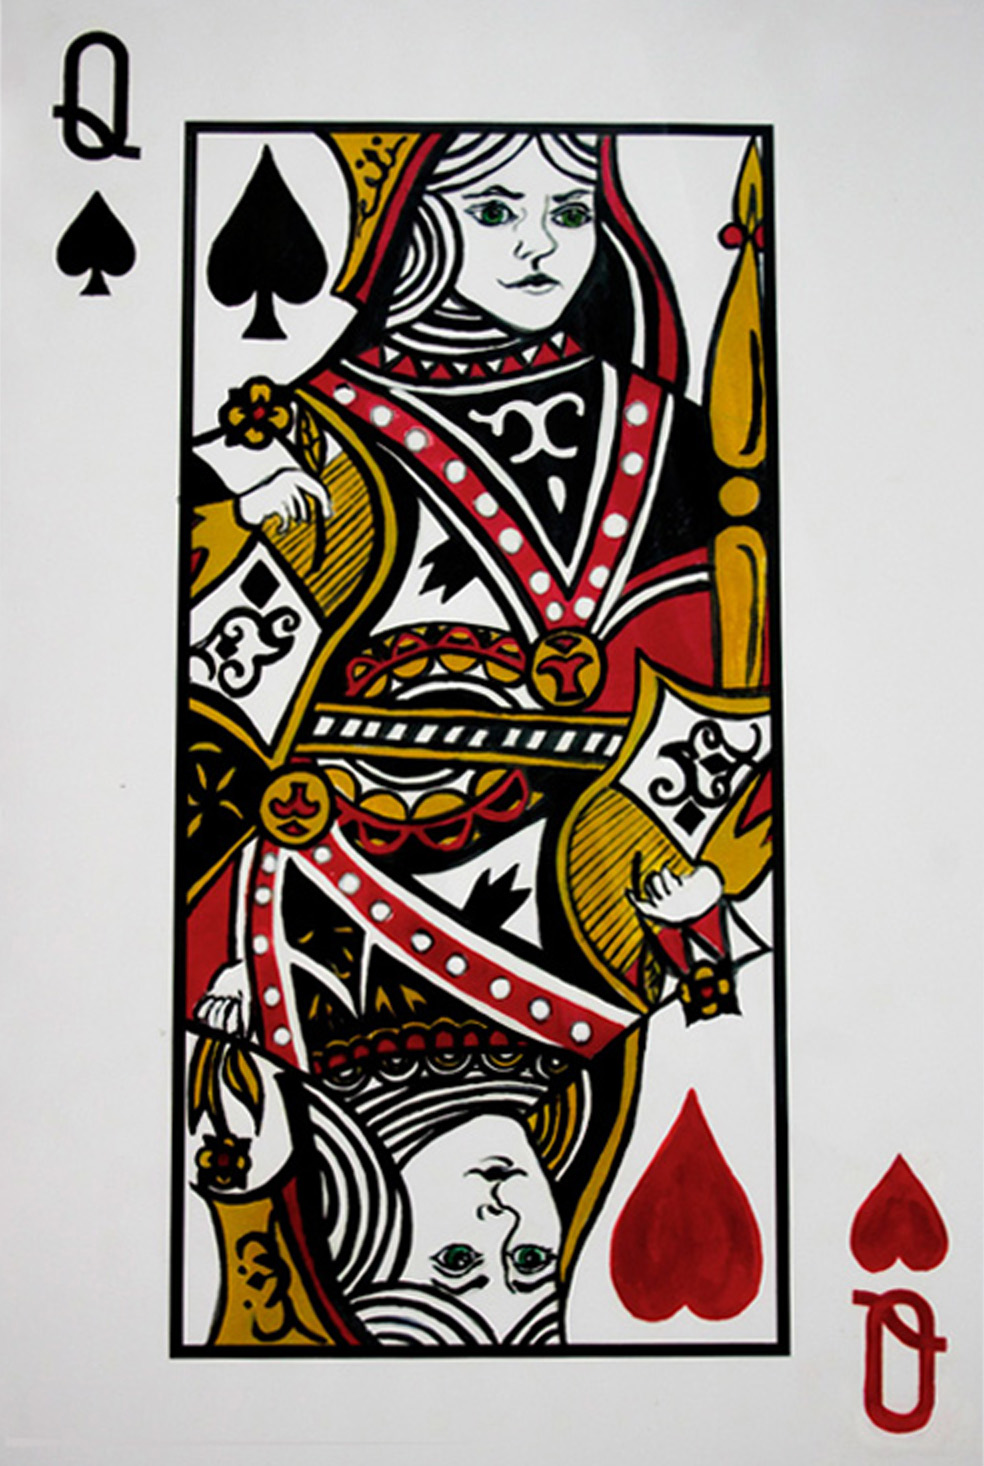 Queen of Hearts or Spades?